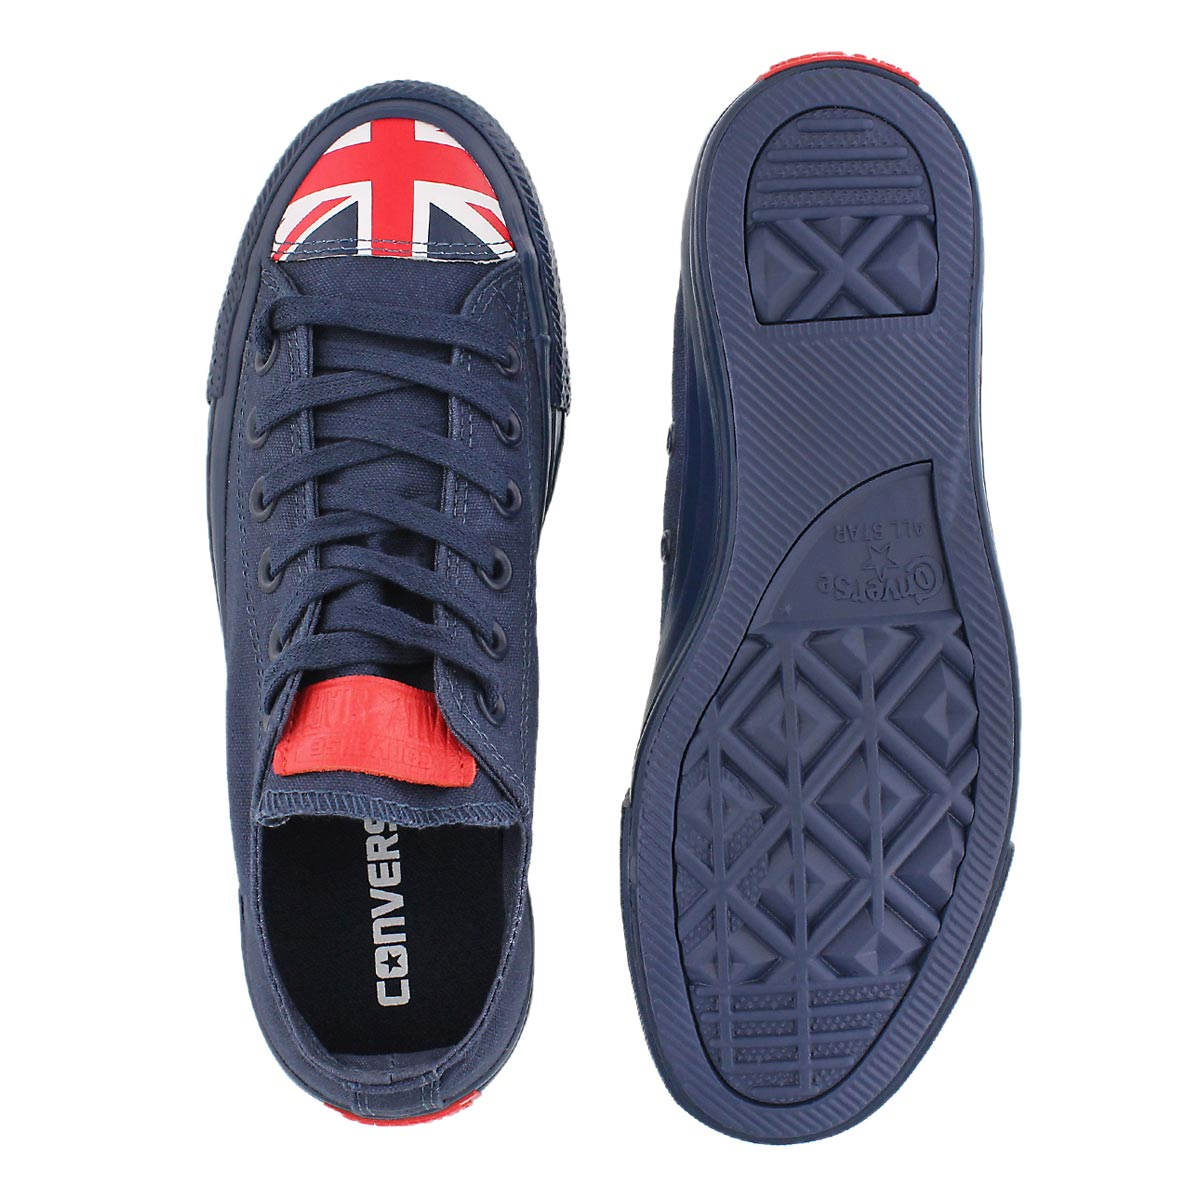 Lds CT All Star UK Flag nvy sneaker